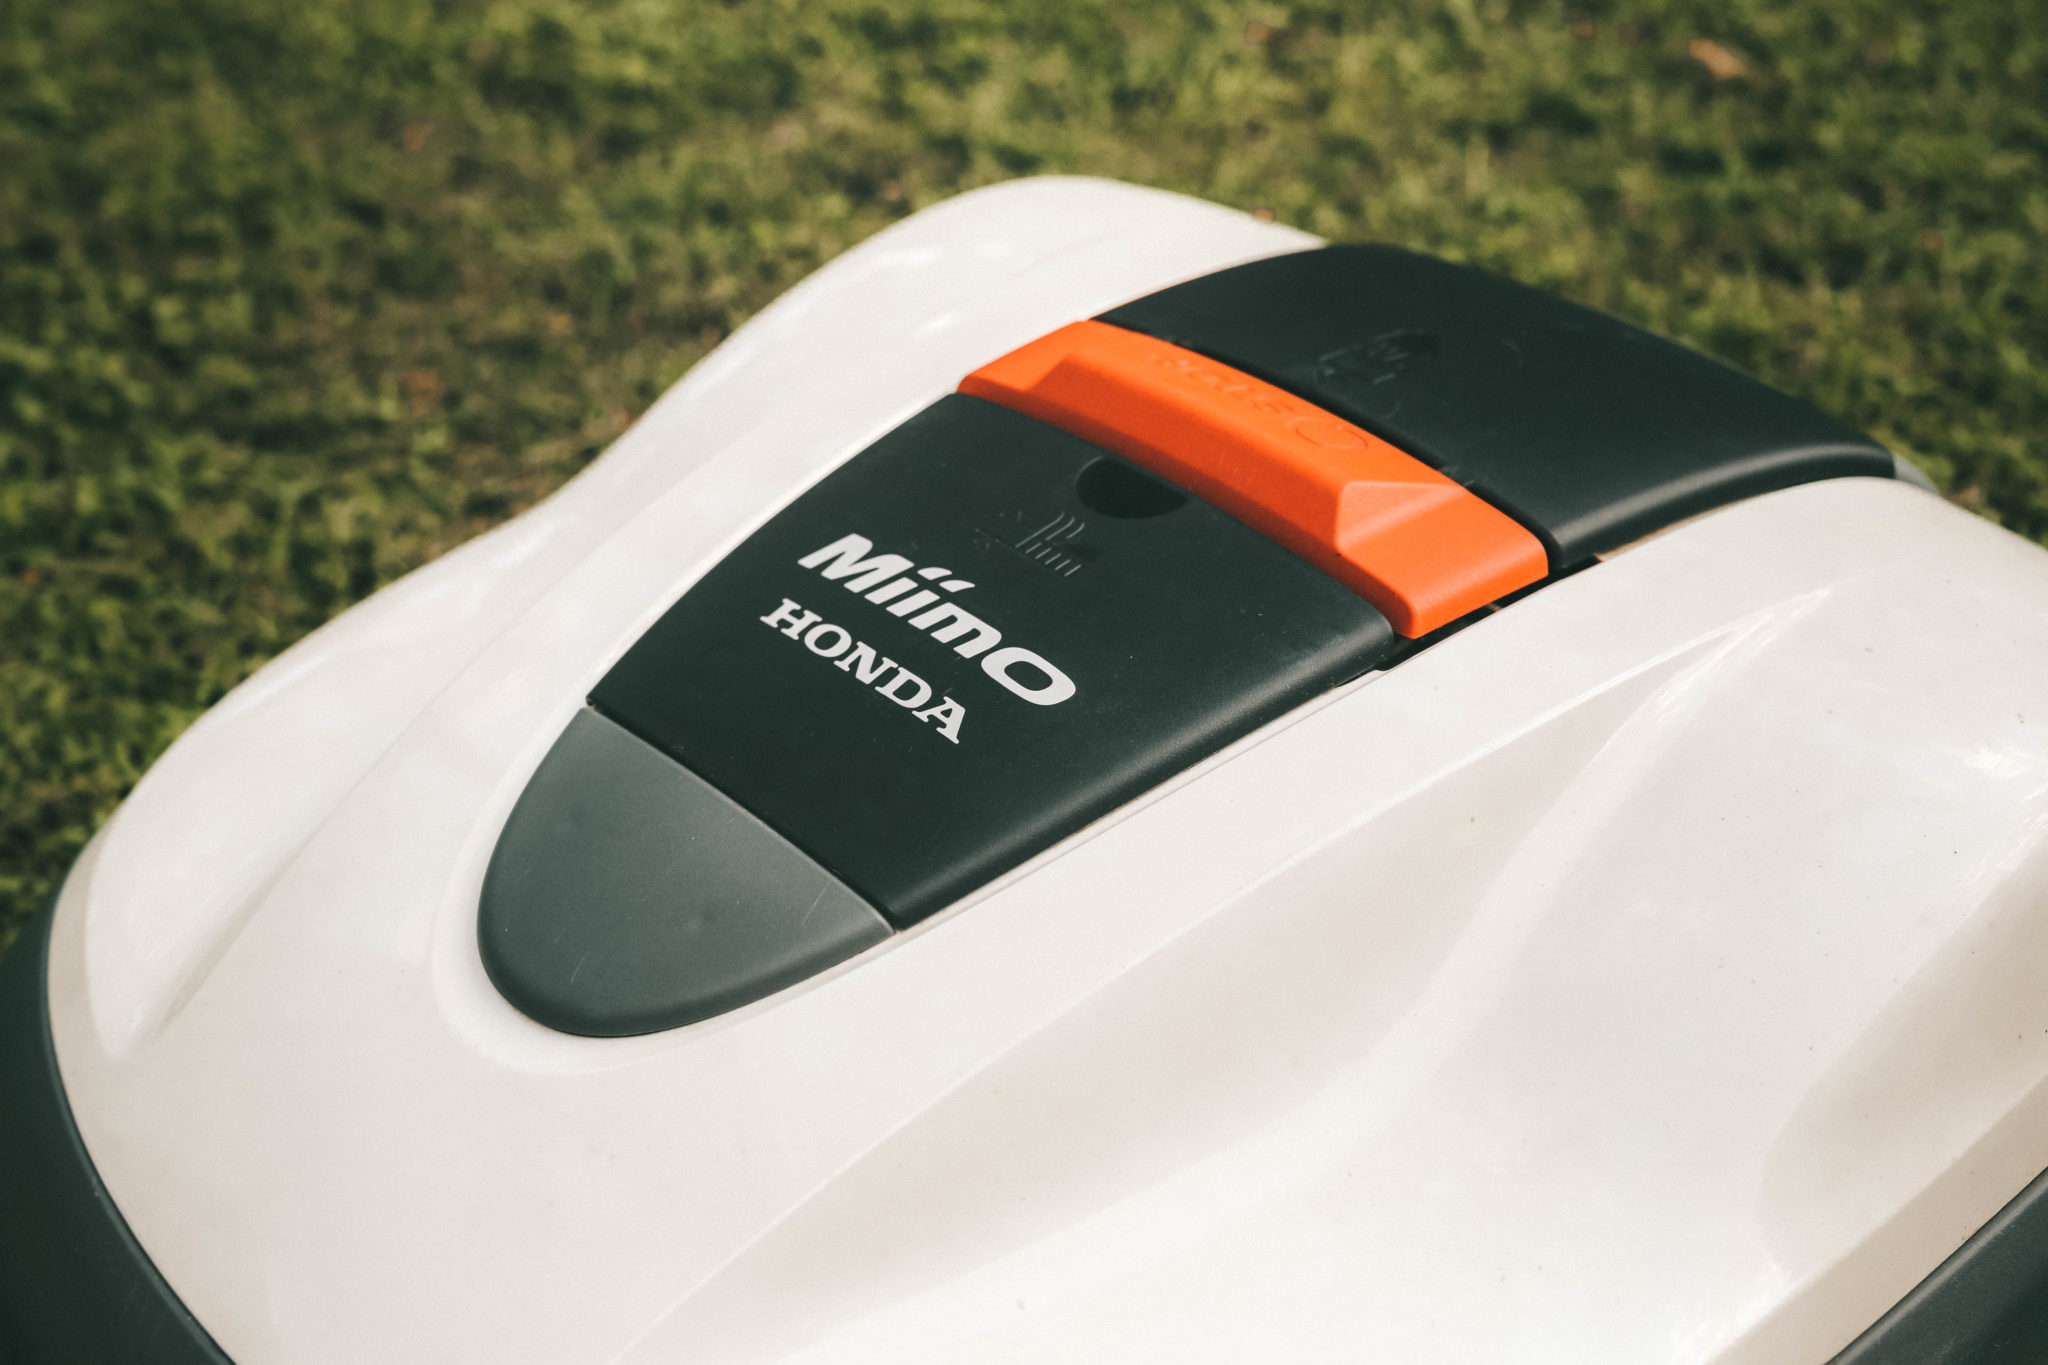 Honda Miimo Robotic Lawn Mower Review by popular Austin lifestyle blog, Dressed to Kill: image of Honda Miimo Robotic Lawn Mower.